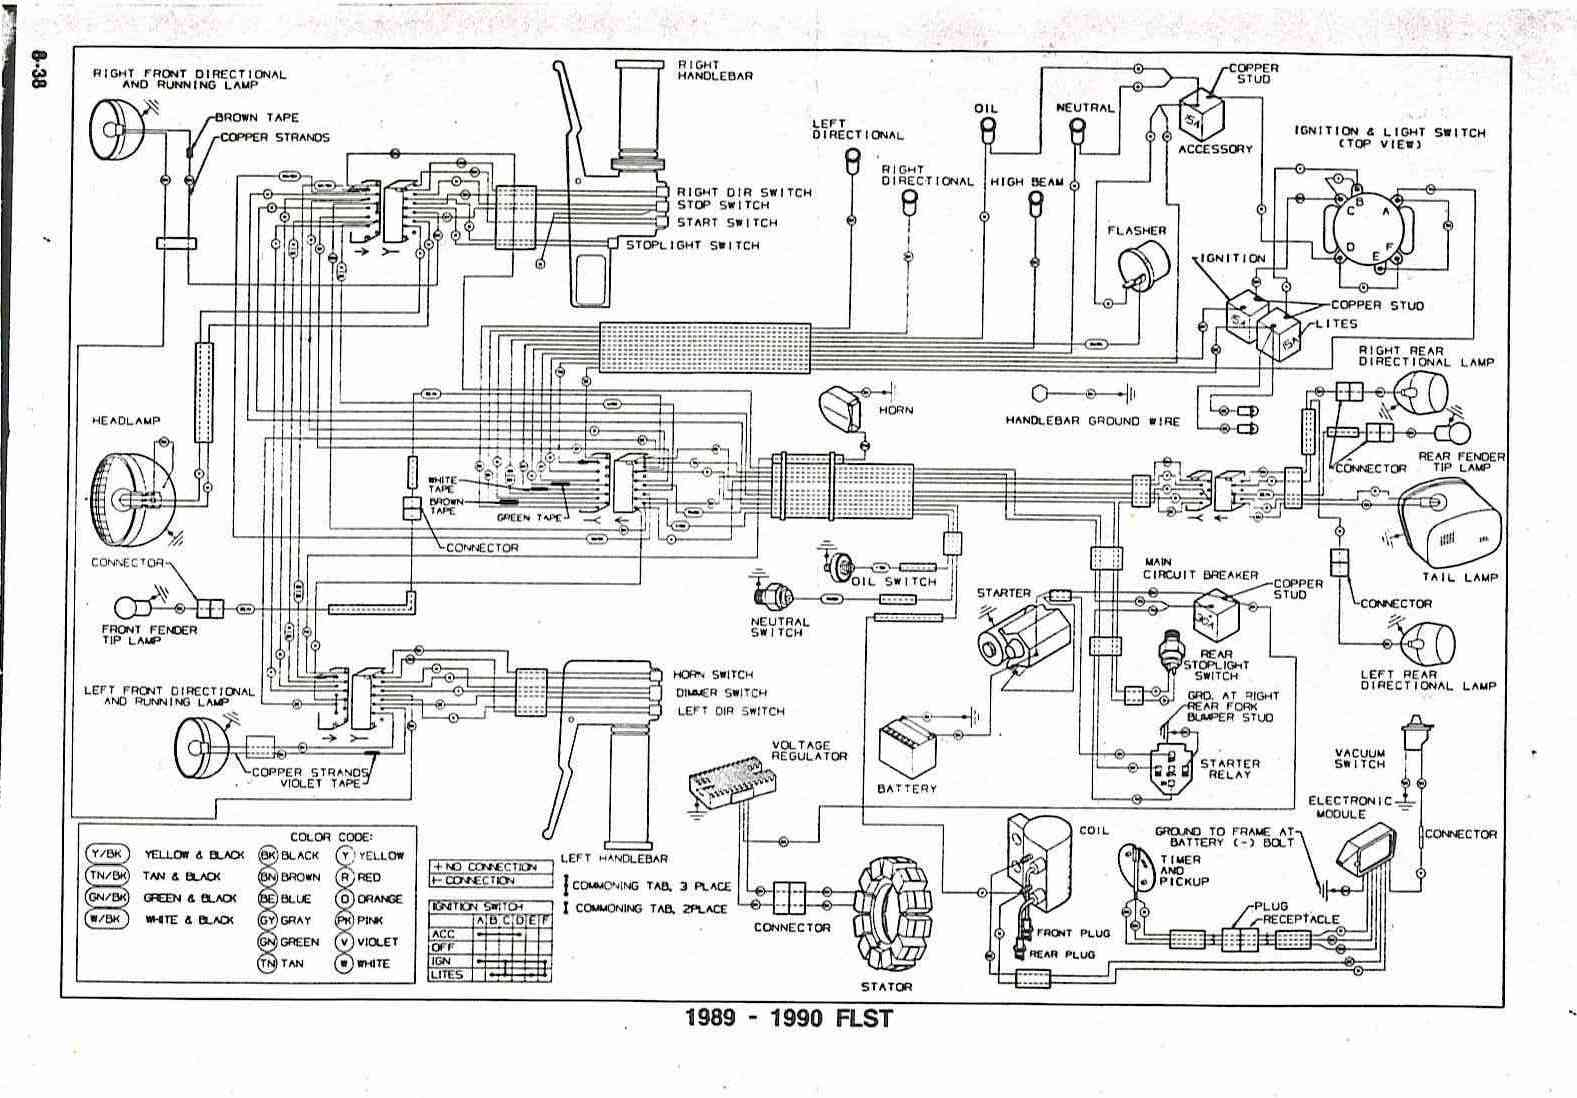 951HD_wireing_schematic2 harley wiring diagrams harley davidson golf cart schematics 2005 harley wiring diagram at reclaimingppi.co